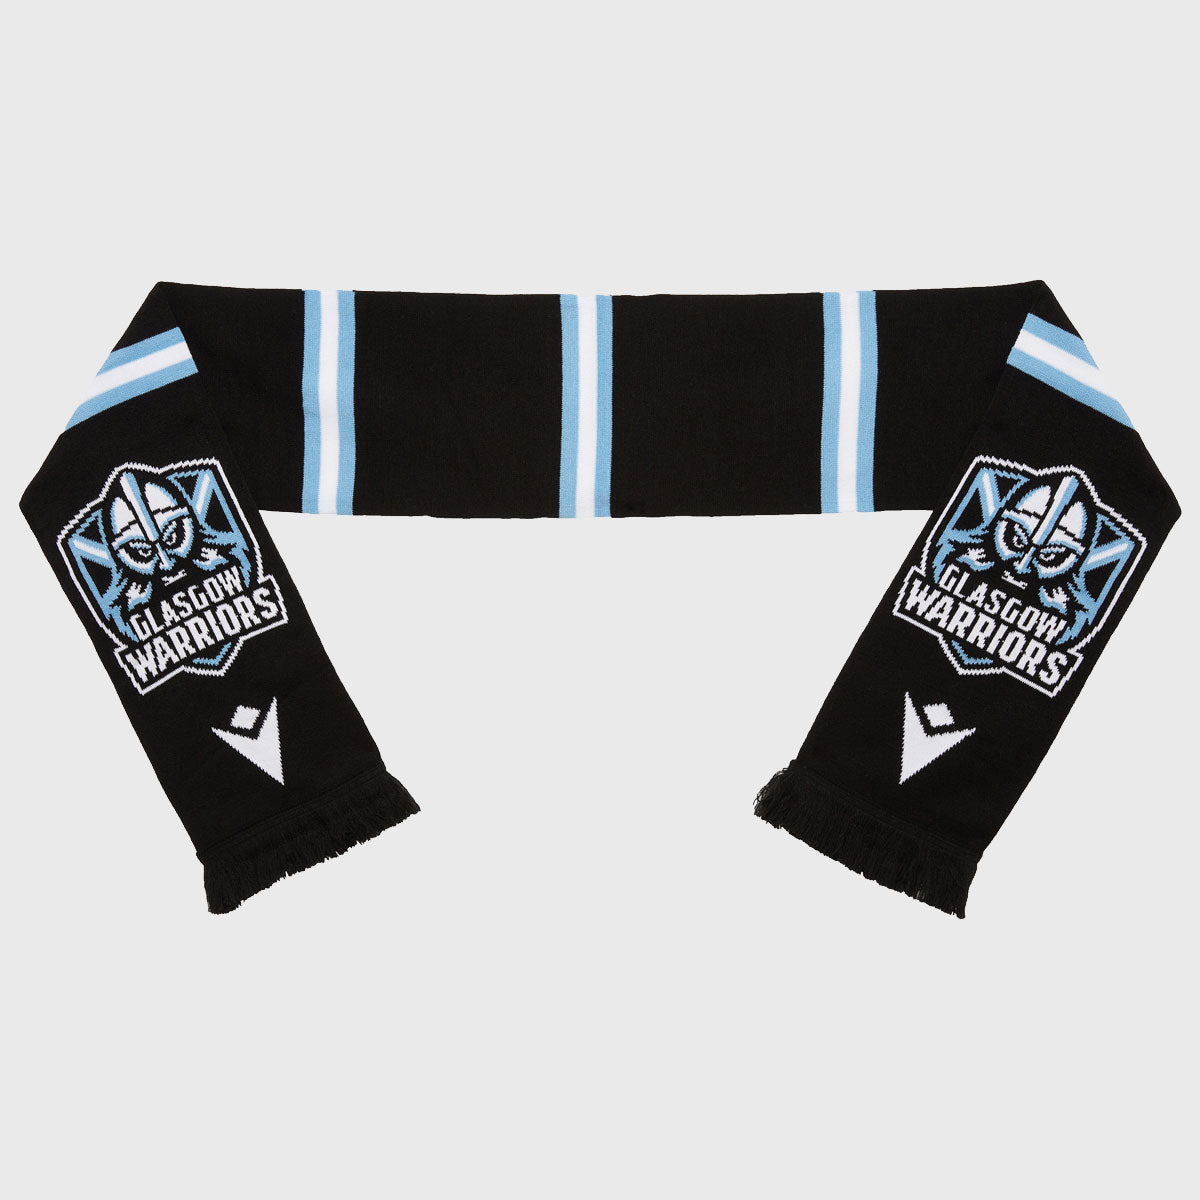 Glasgow Warriors Rugby Bar Scarf Black 2020/21 - First XV rugbystuff.com